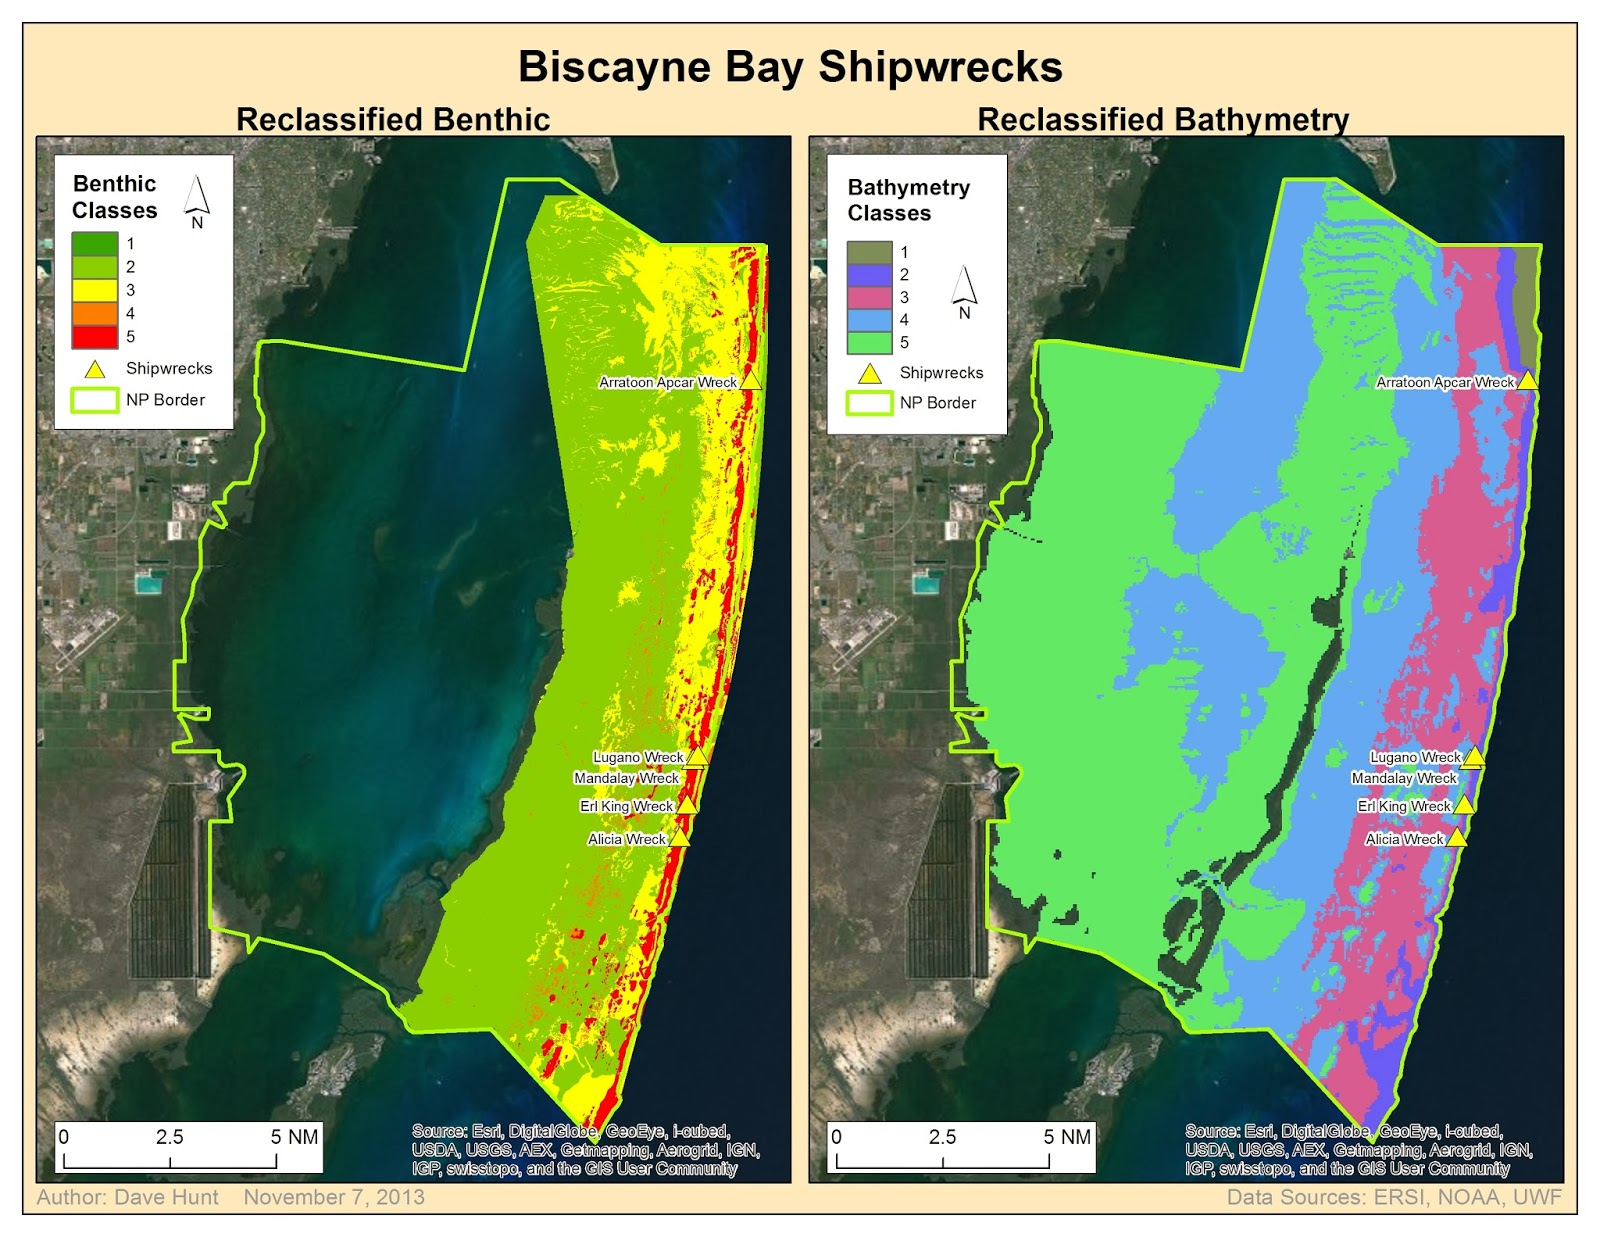 to help us understand the benthic bottom types for example consolidated sediments vs reef terraces these various bottom types are shown in the map